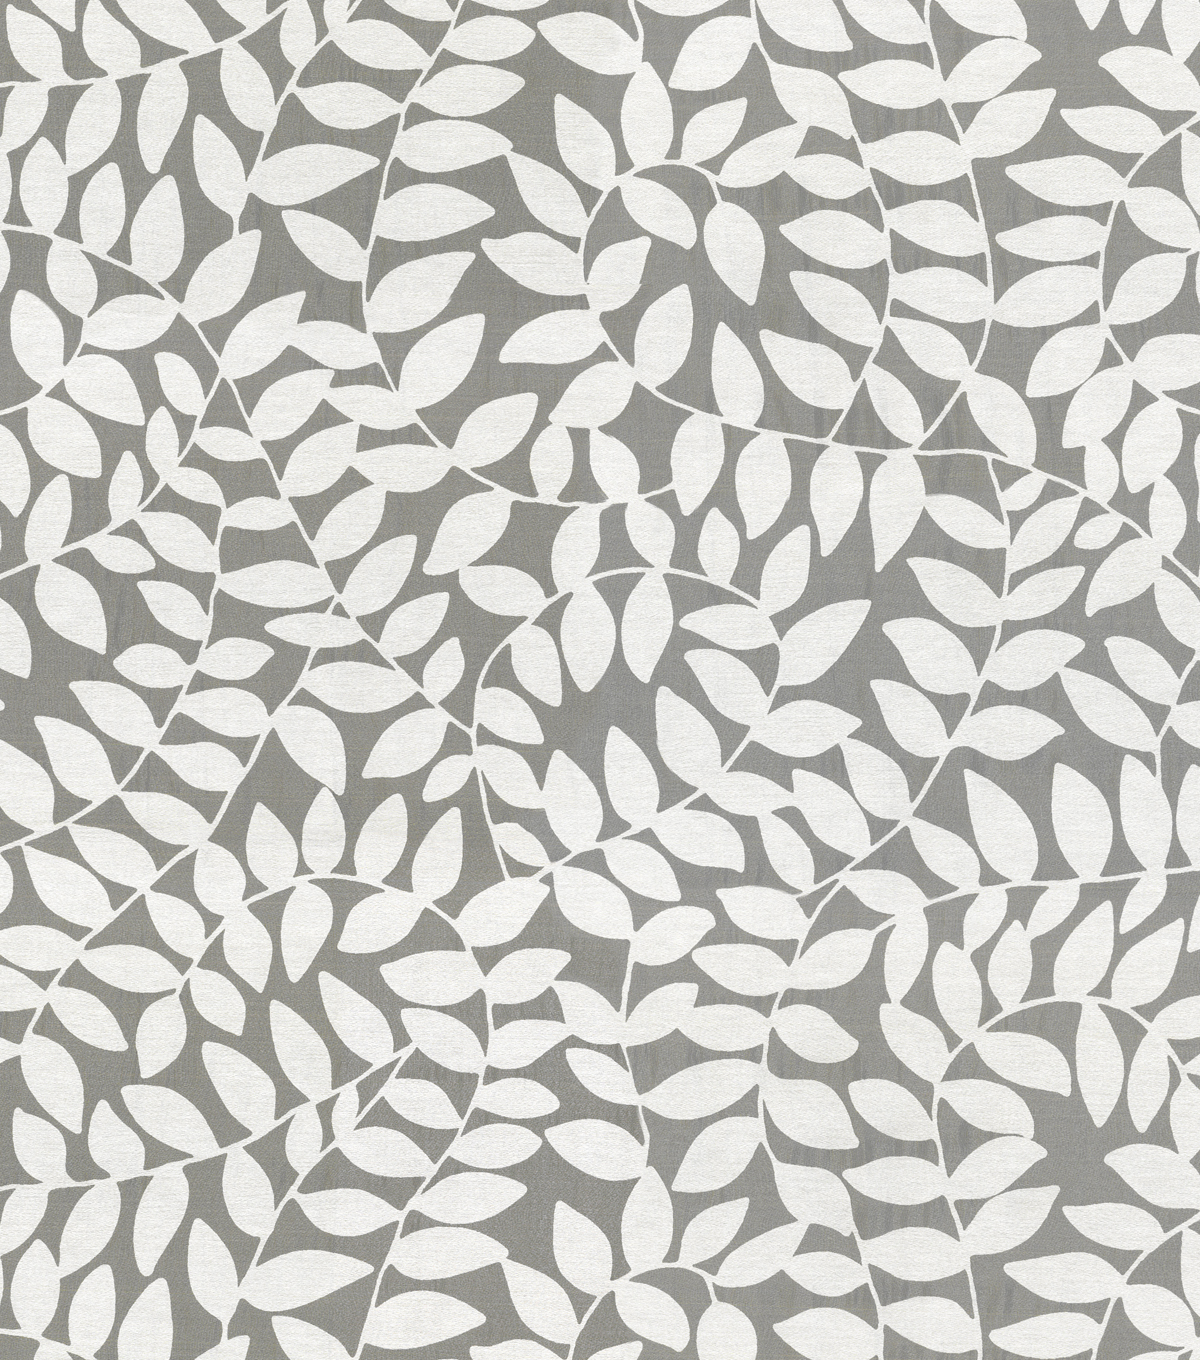 Waverly Sheer Fabric 57\u0022-Be Leaf Me/Snow